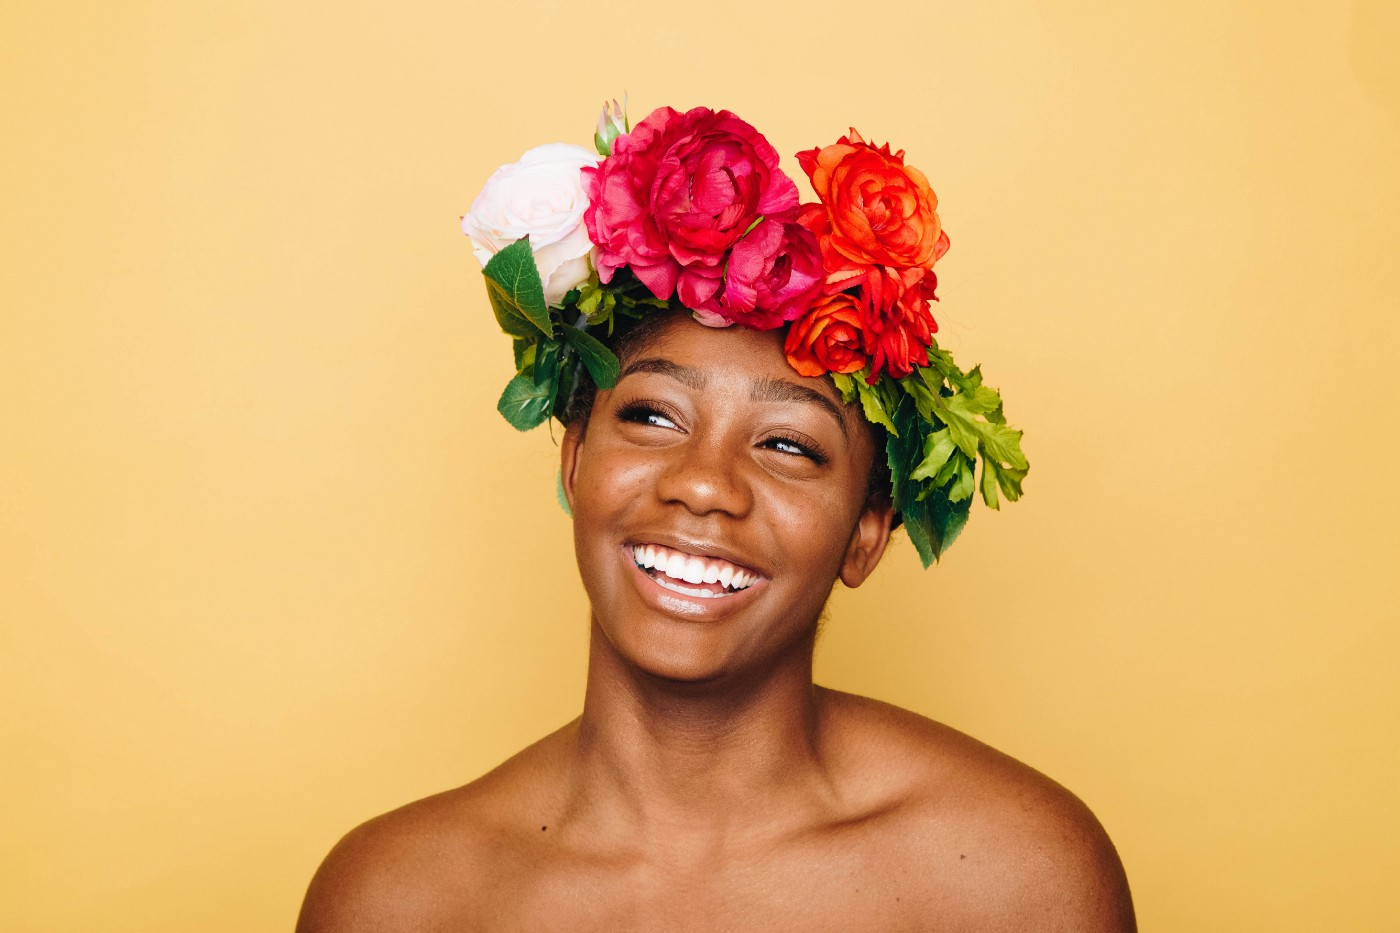 A shoulders-up view of a person with a flower crown, smiling, in front of a yellow background.